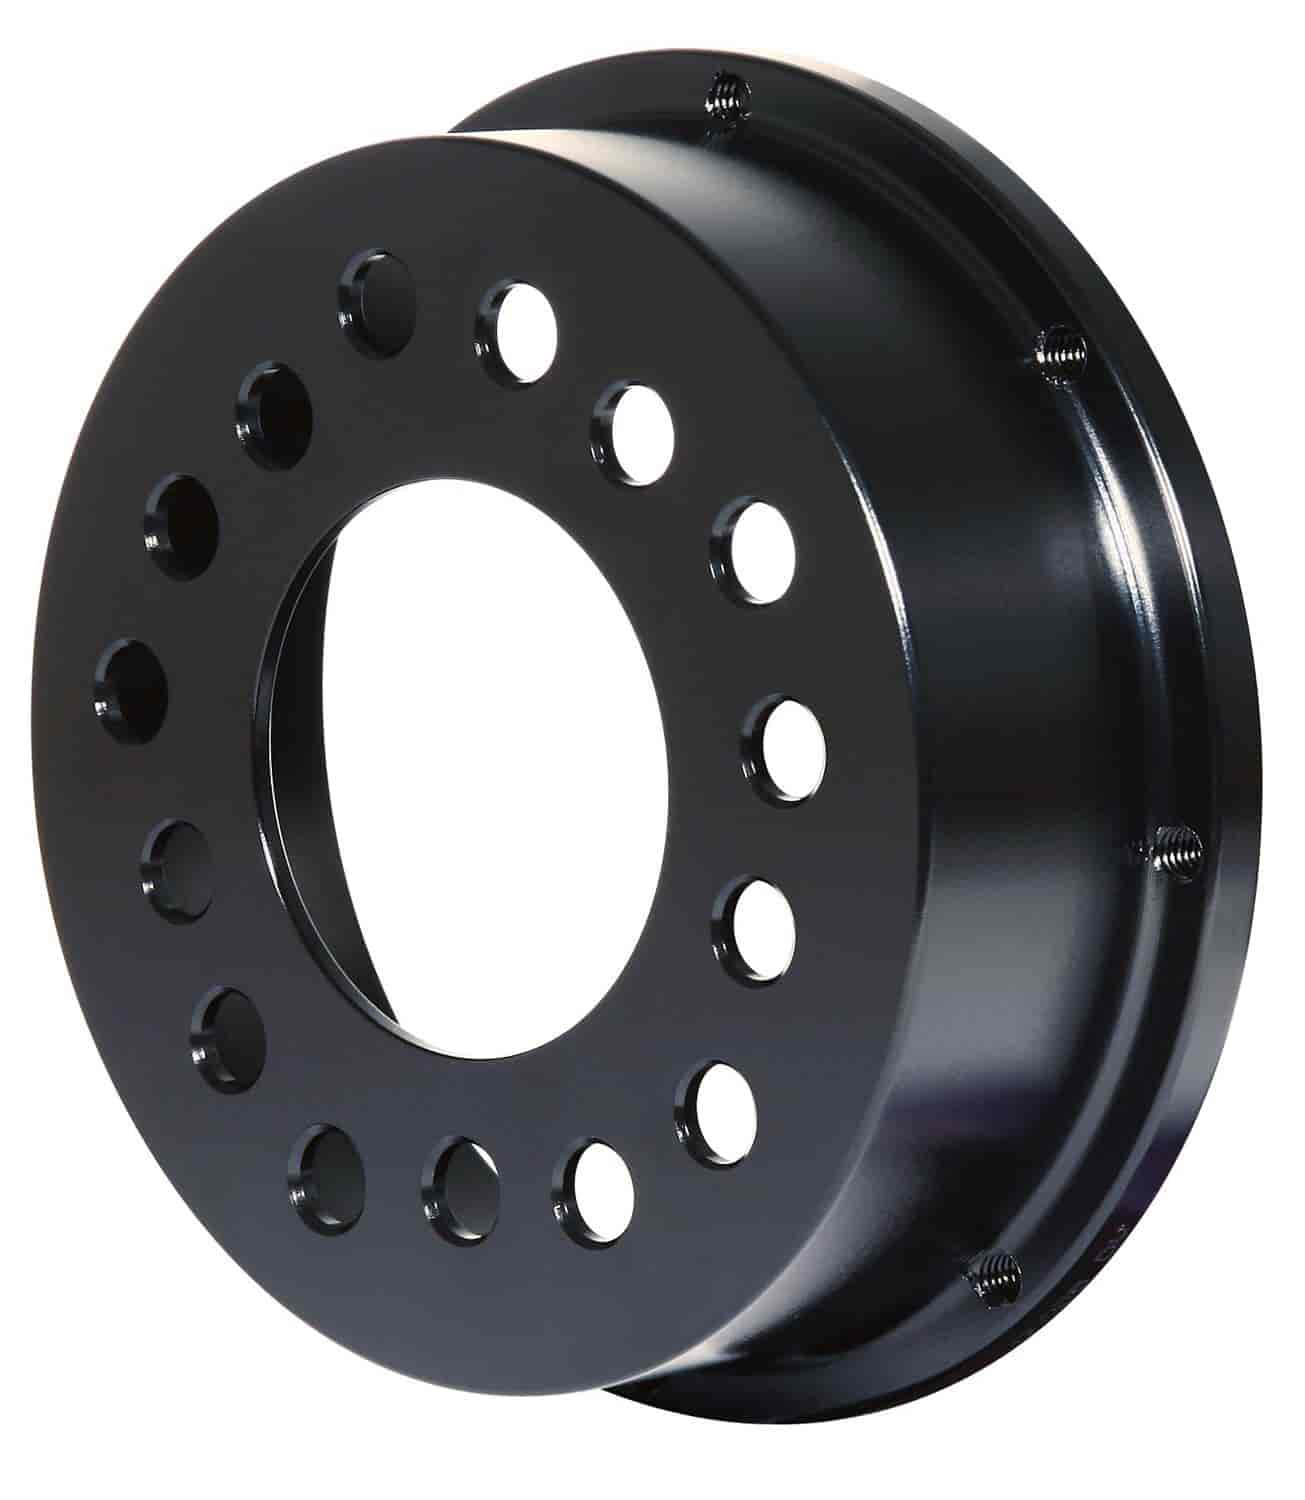 Wilwood 170-0317 - Wilwood Brake Components